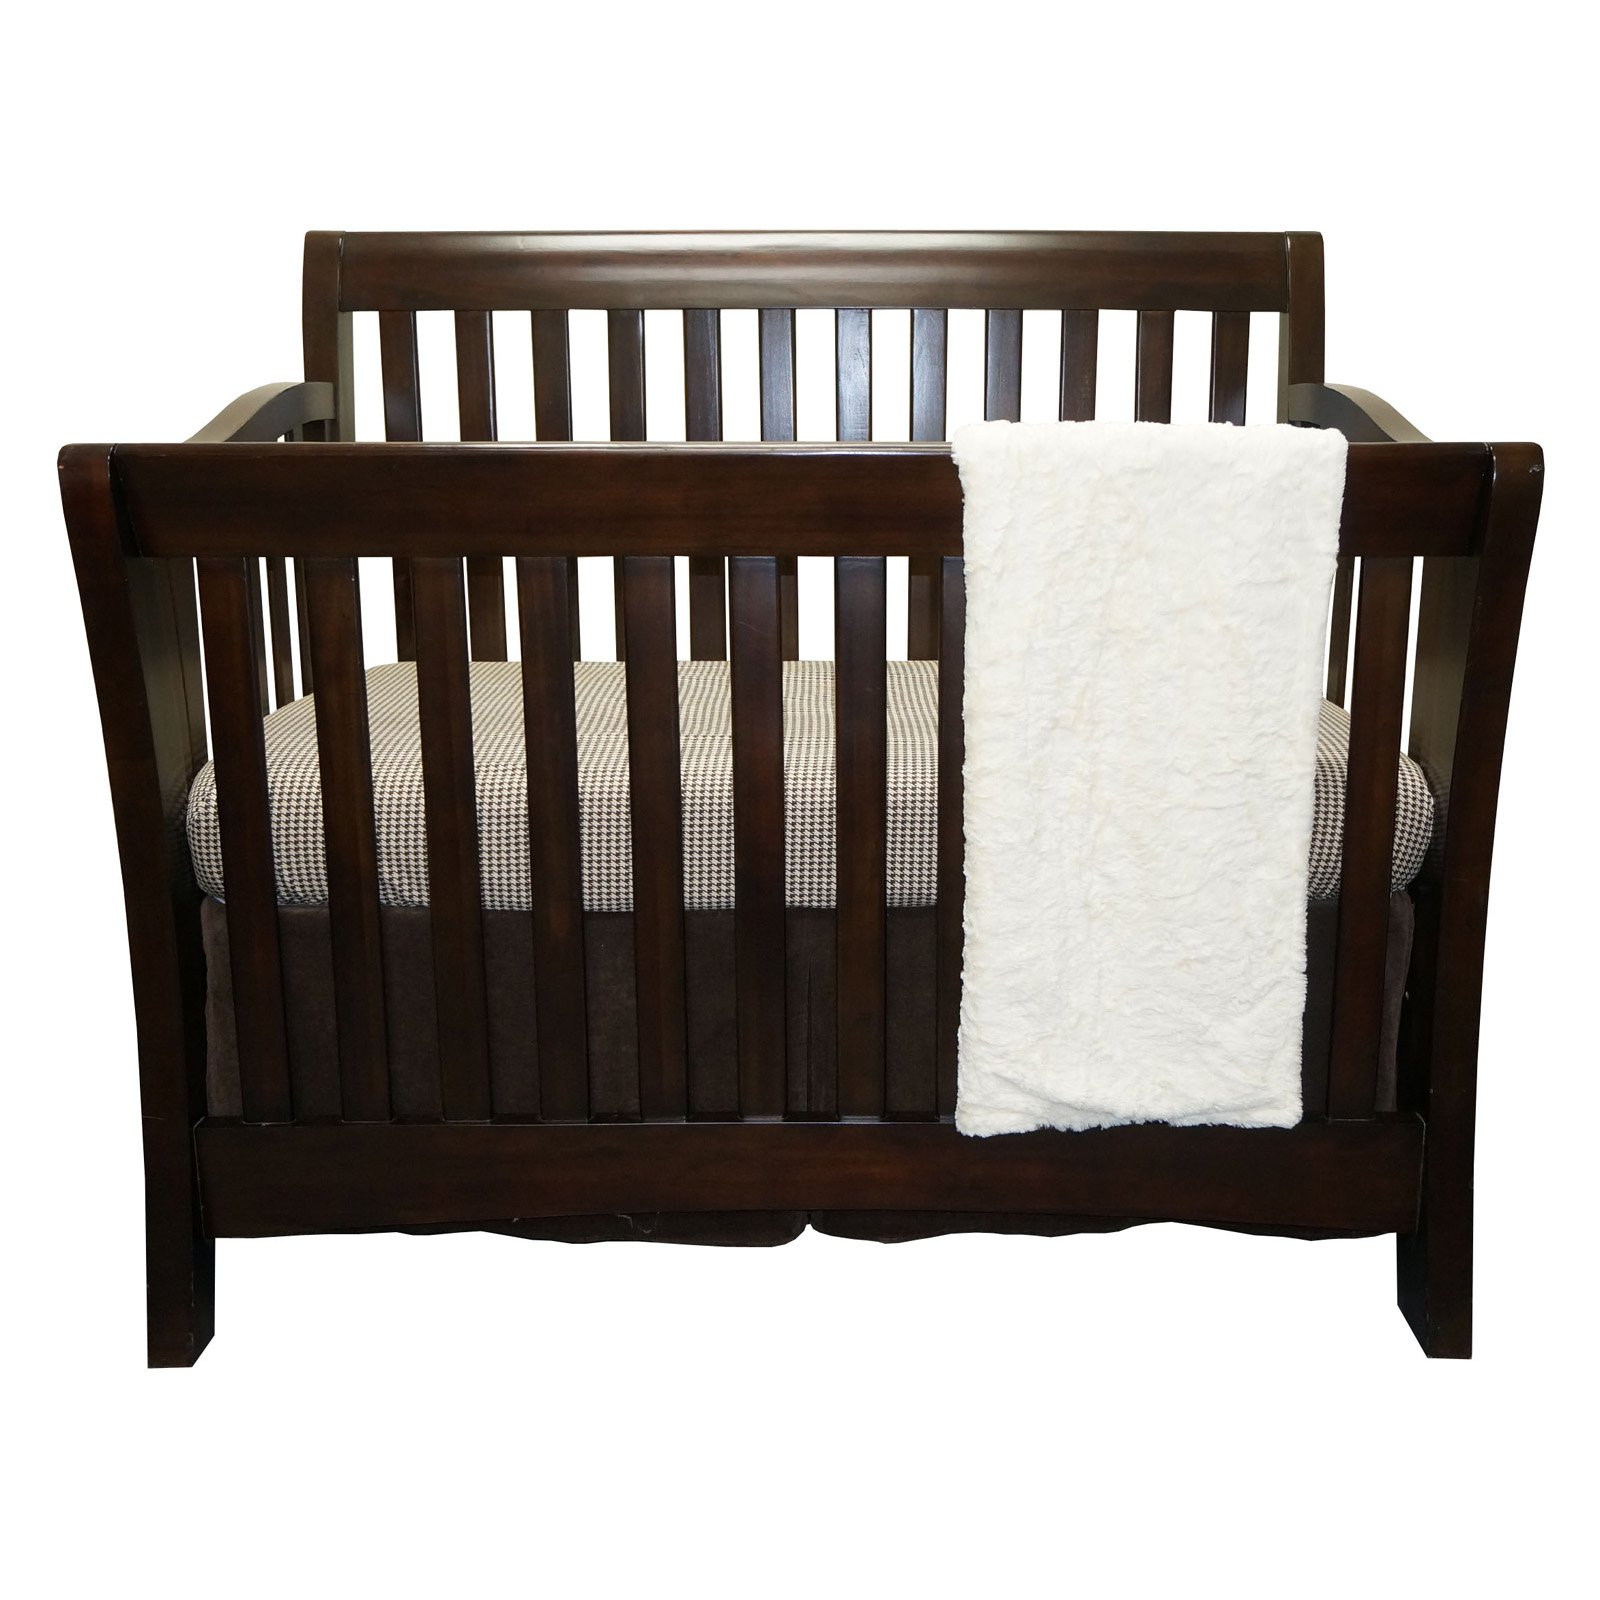 Jayden 3 Piece Crib Bedding Set By Cotton Tale Designs Walmart Com Walmart Com